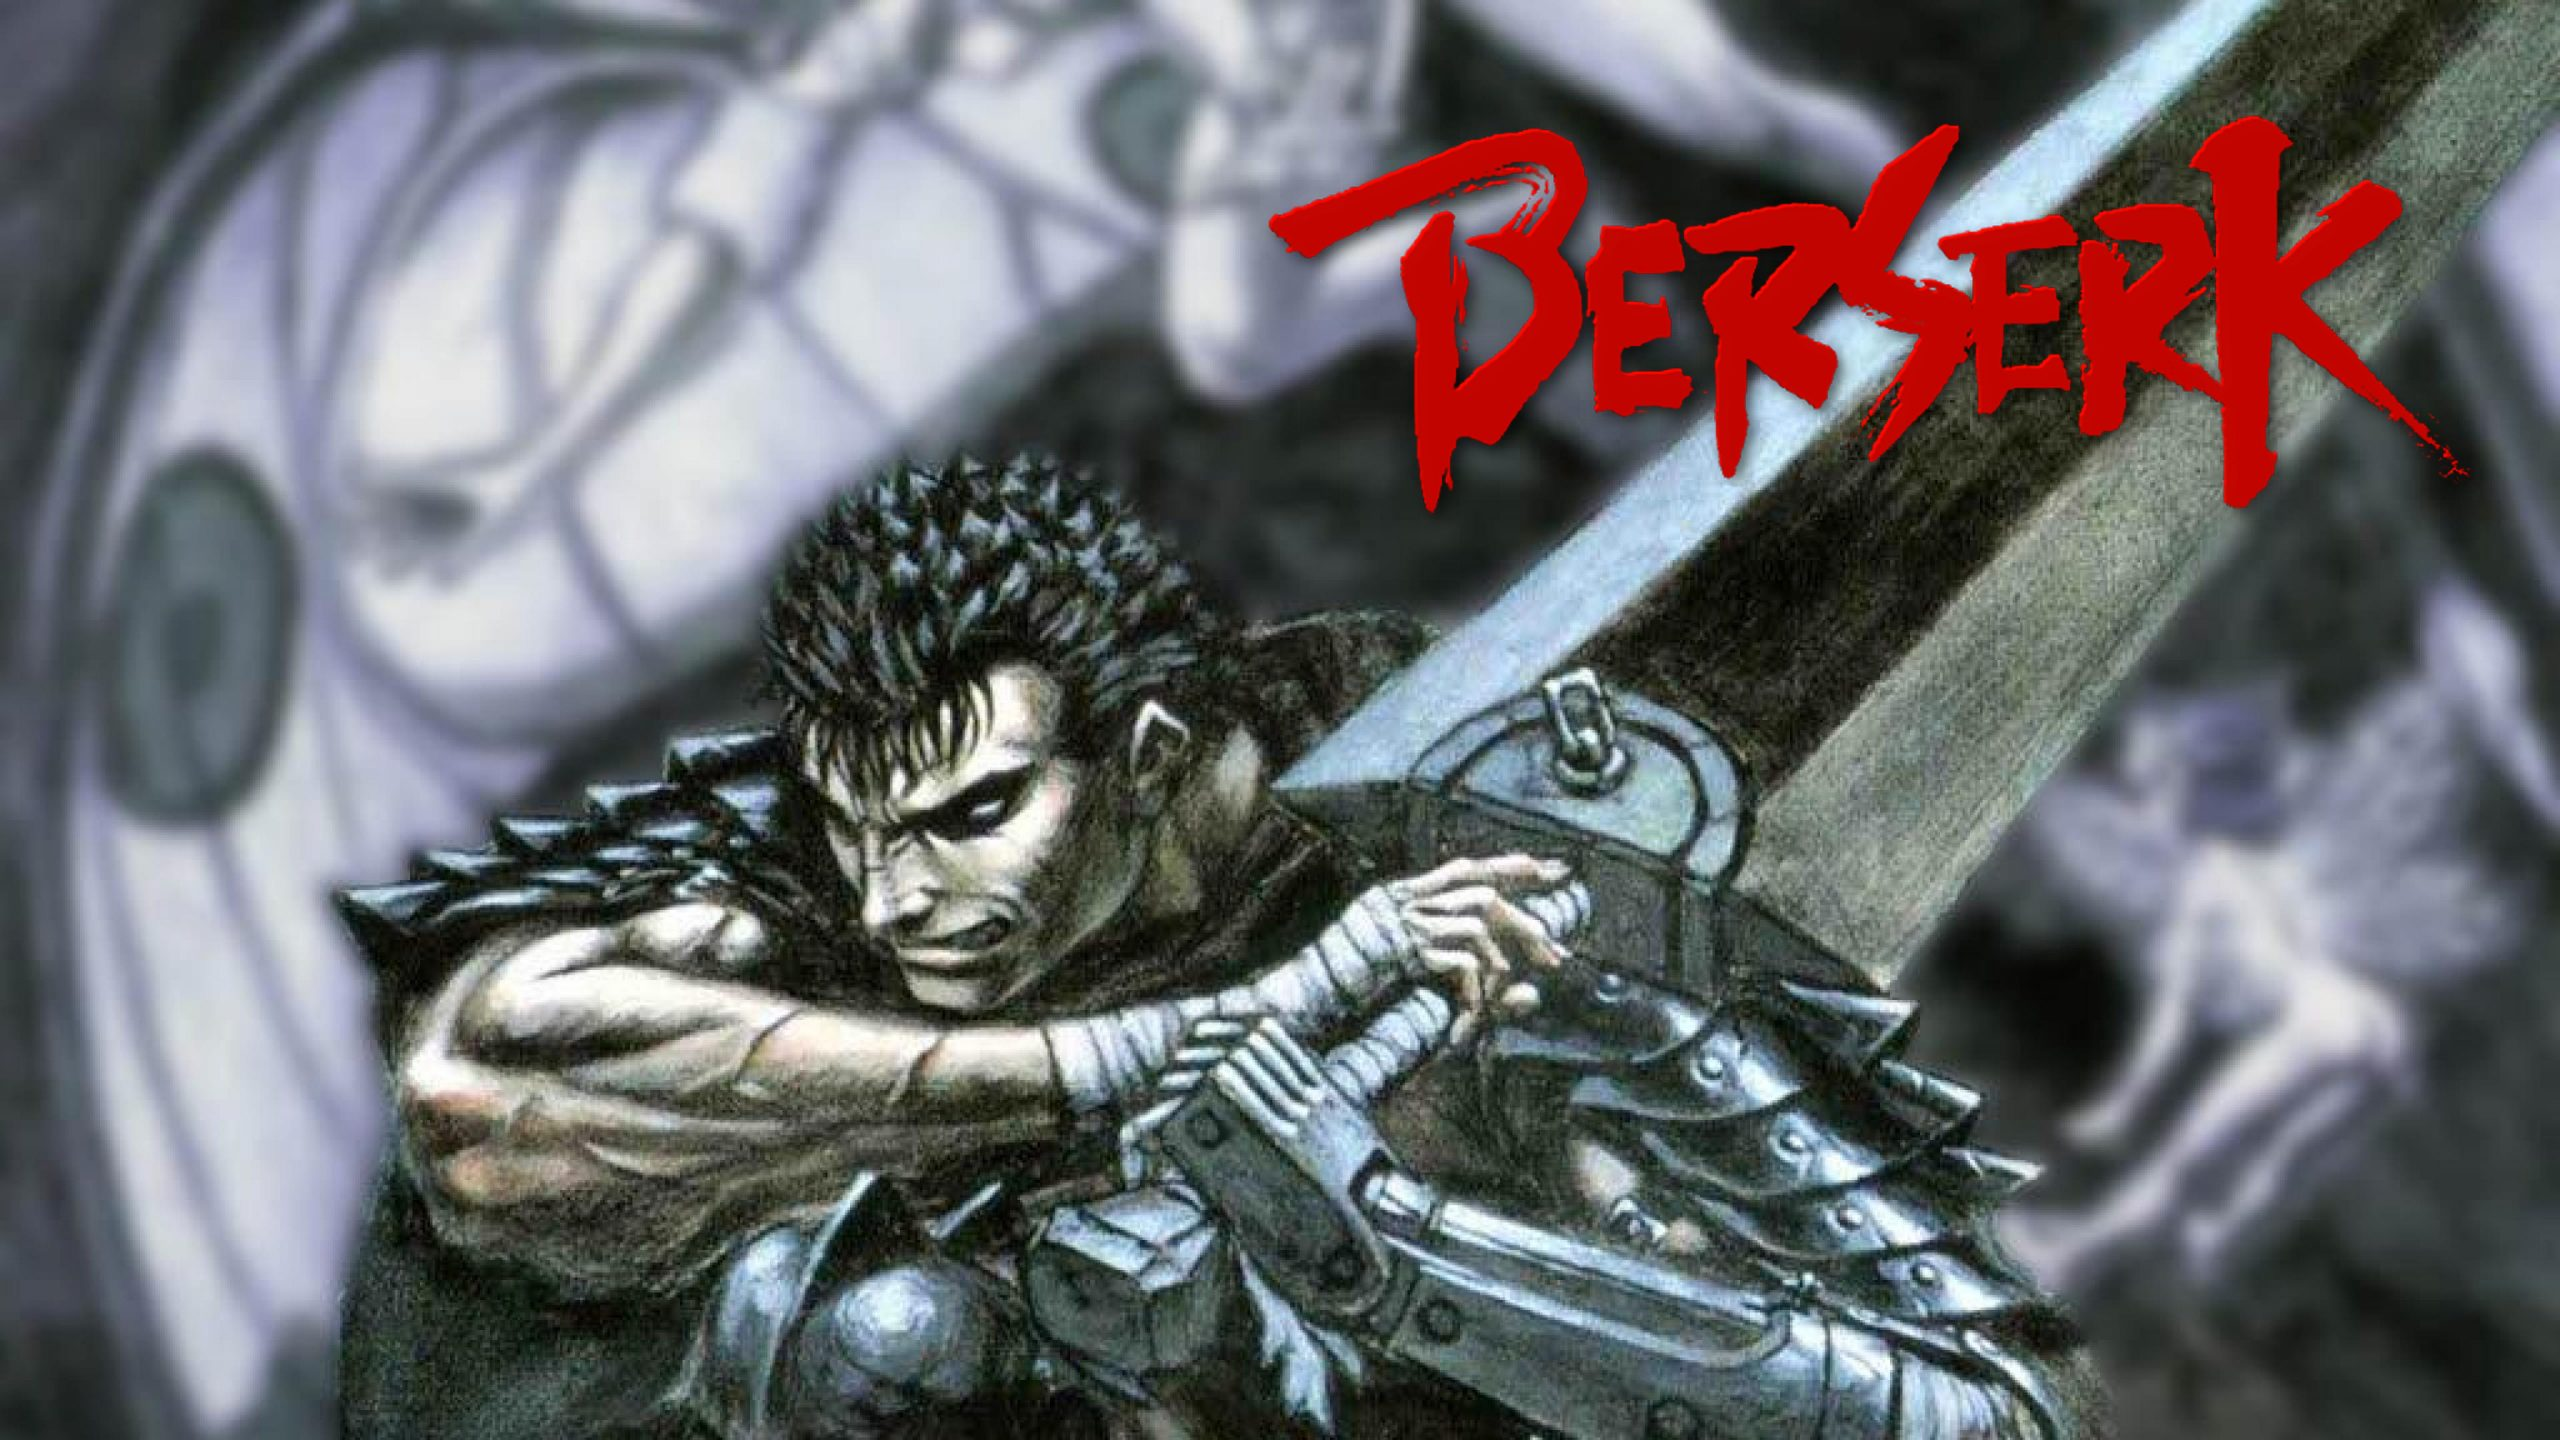 New Berserk TV Anime's premiere date and character visuals revealed